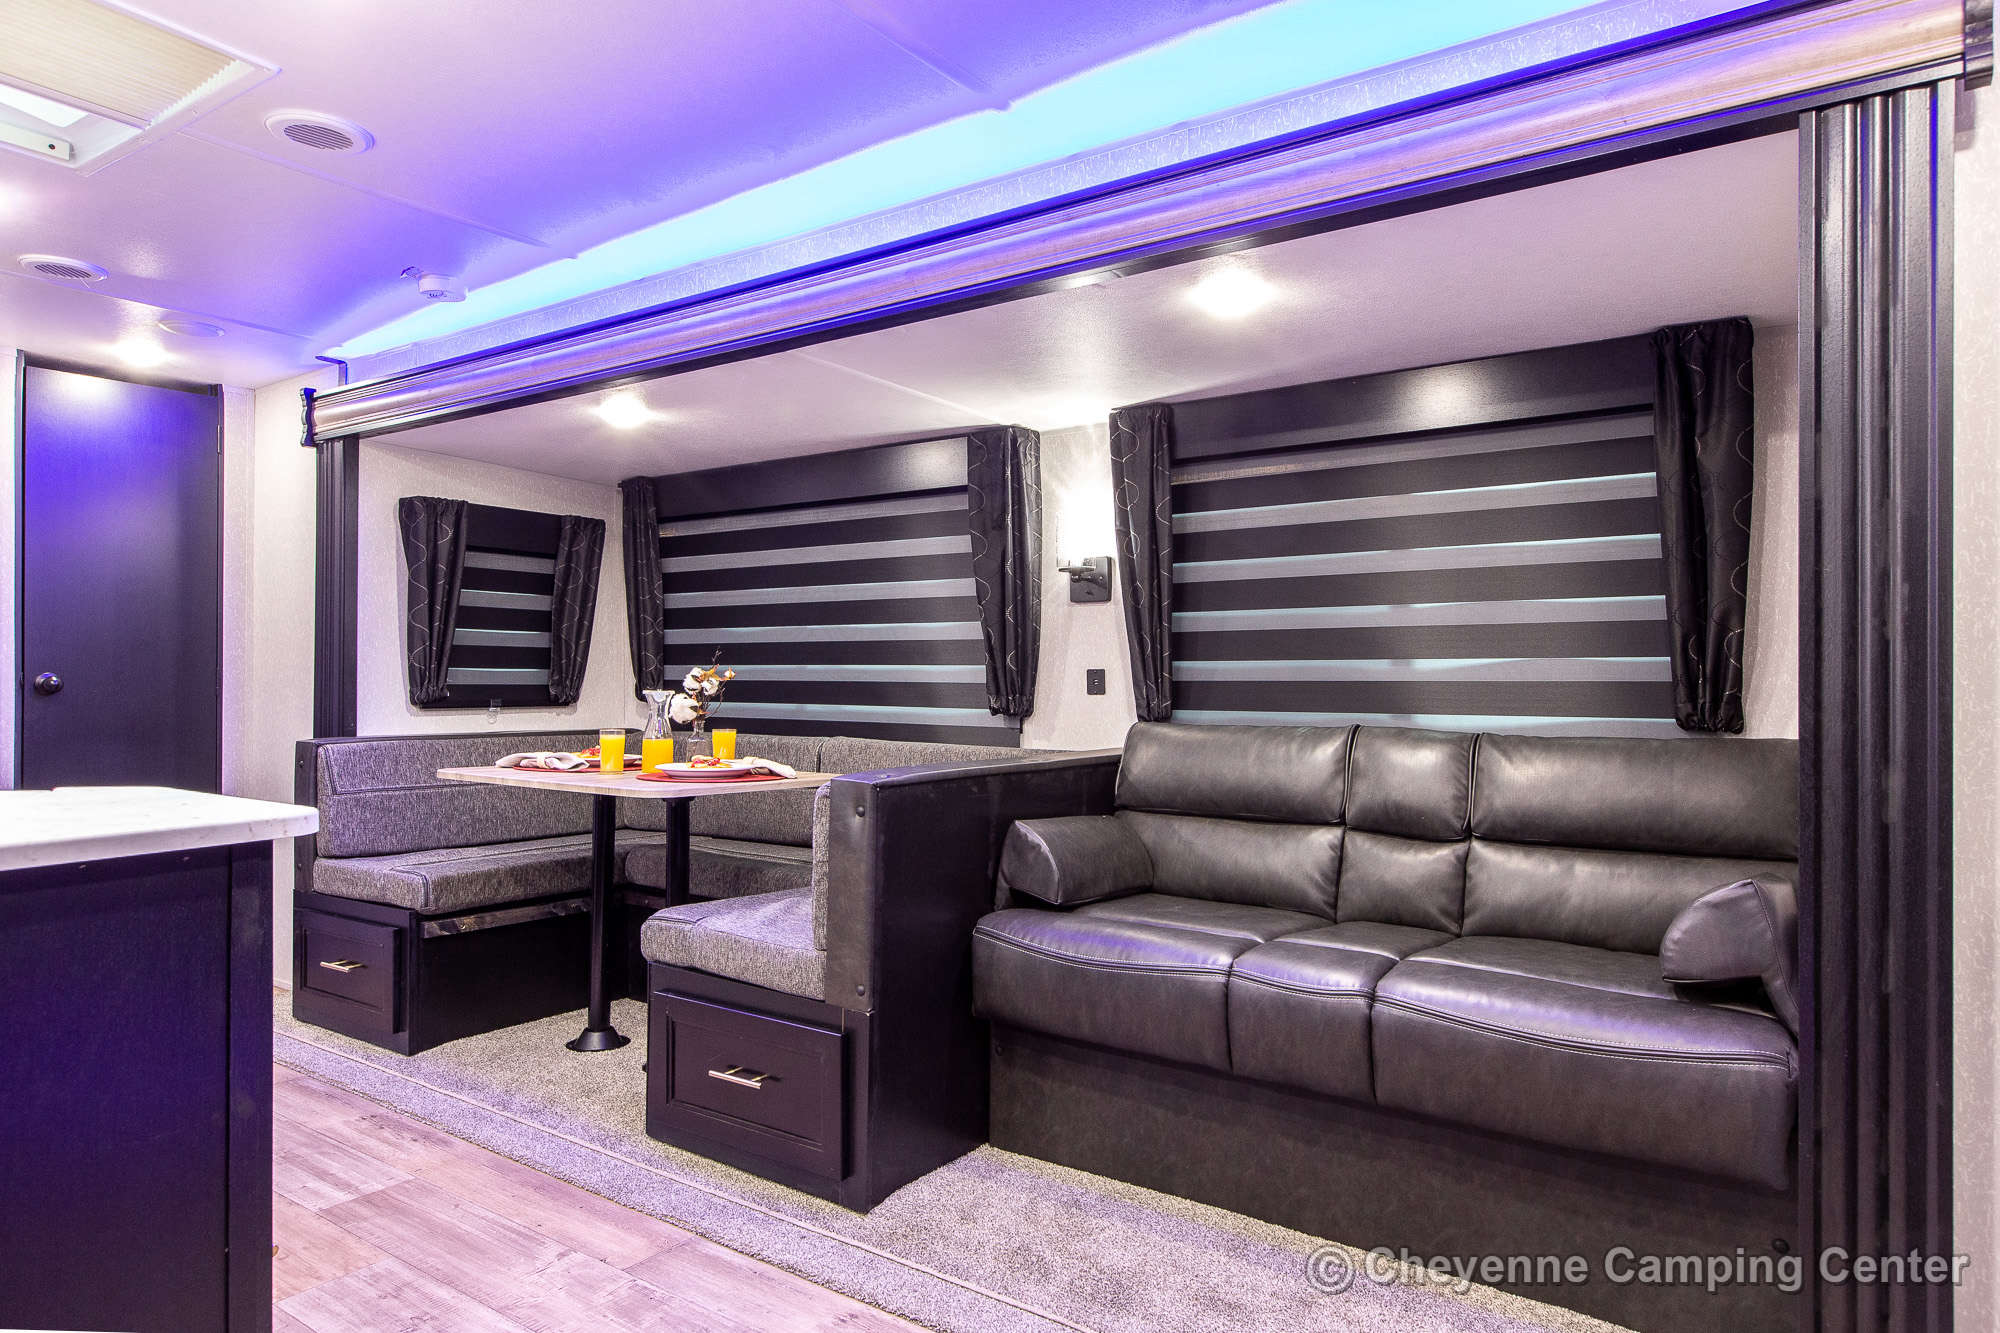 2022 Forest River Cherokee 234DC Travel Trailer Interior Image